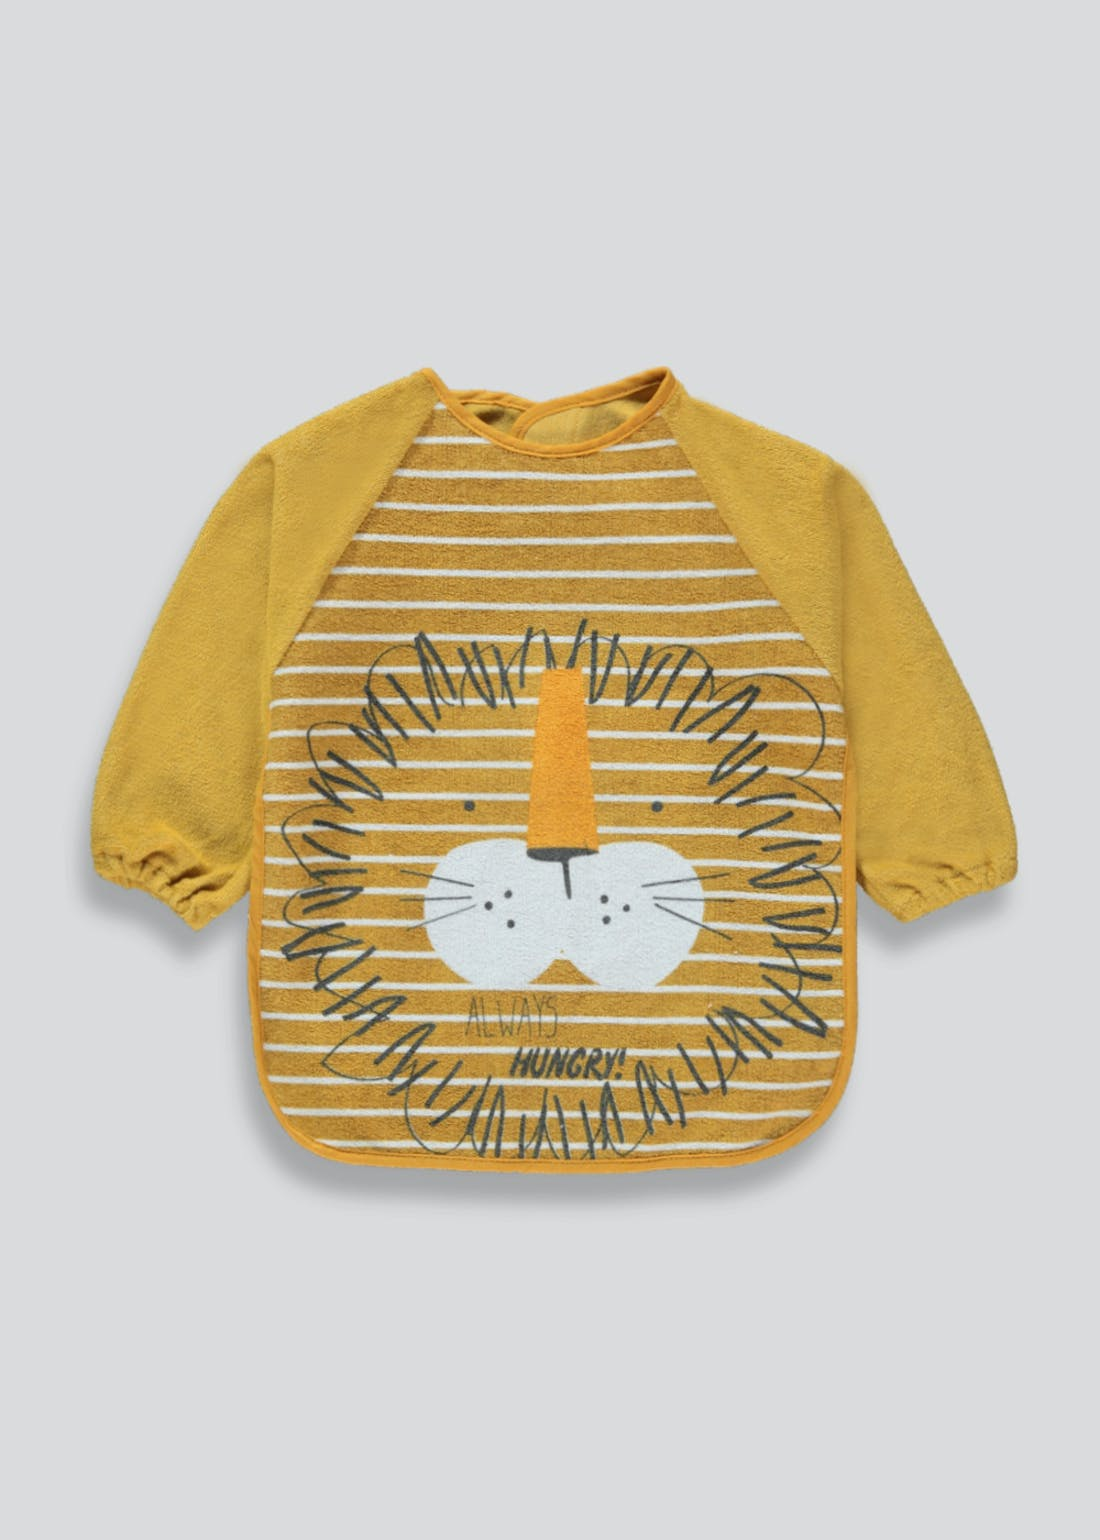 Unisex Lion Terry Bib (One Size)